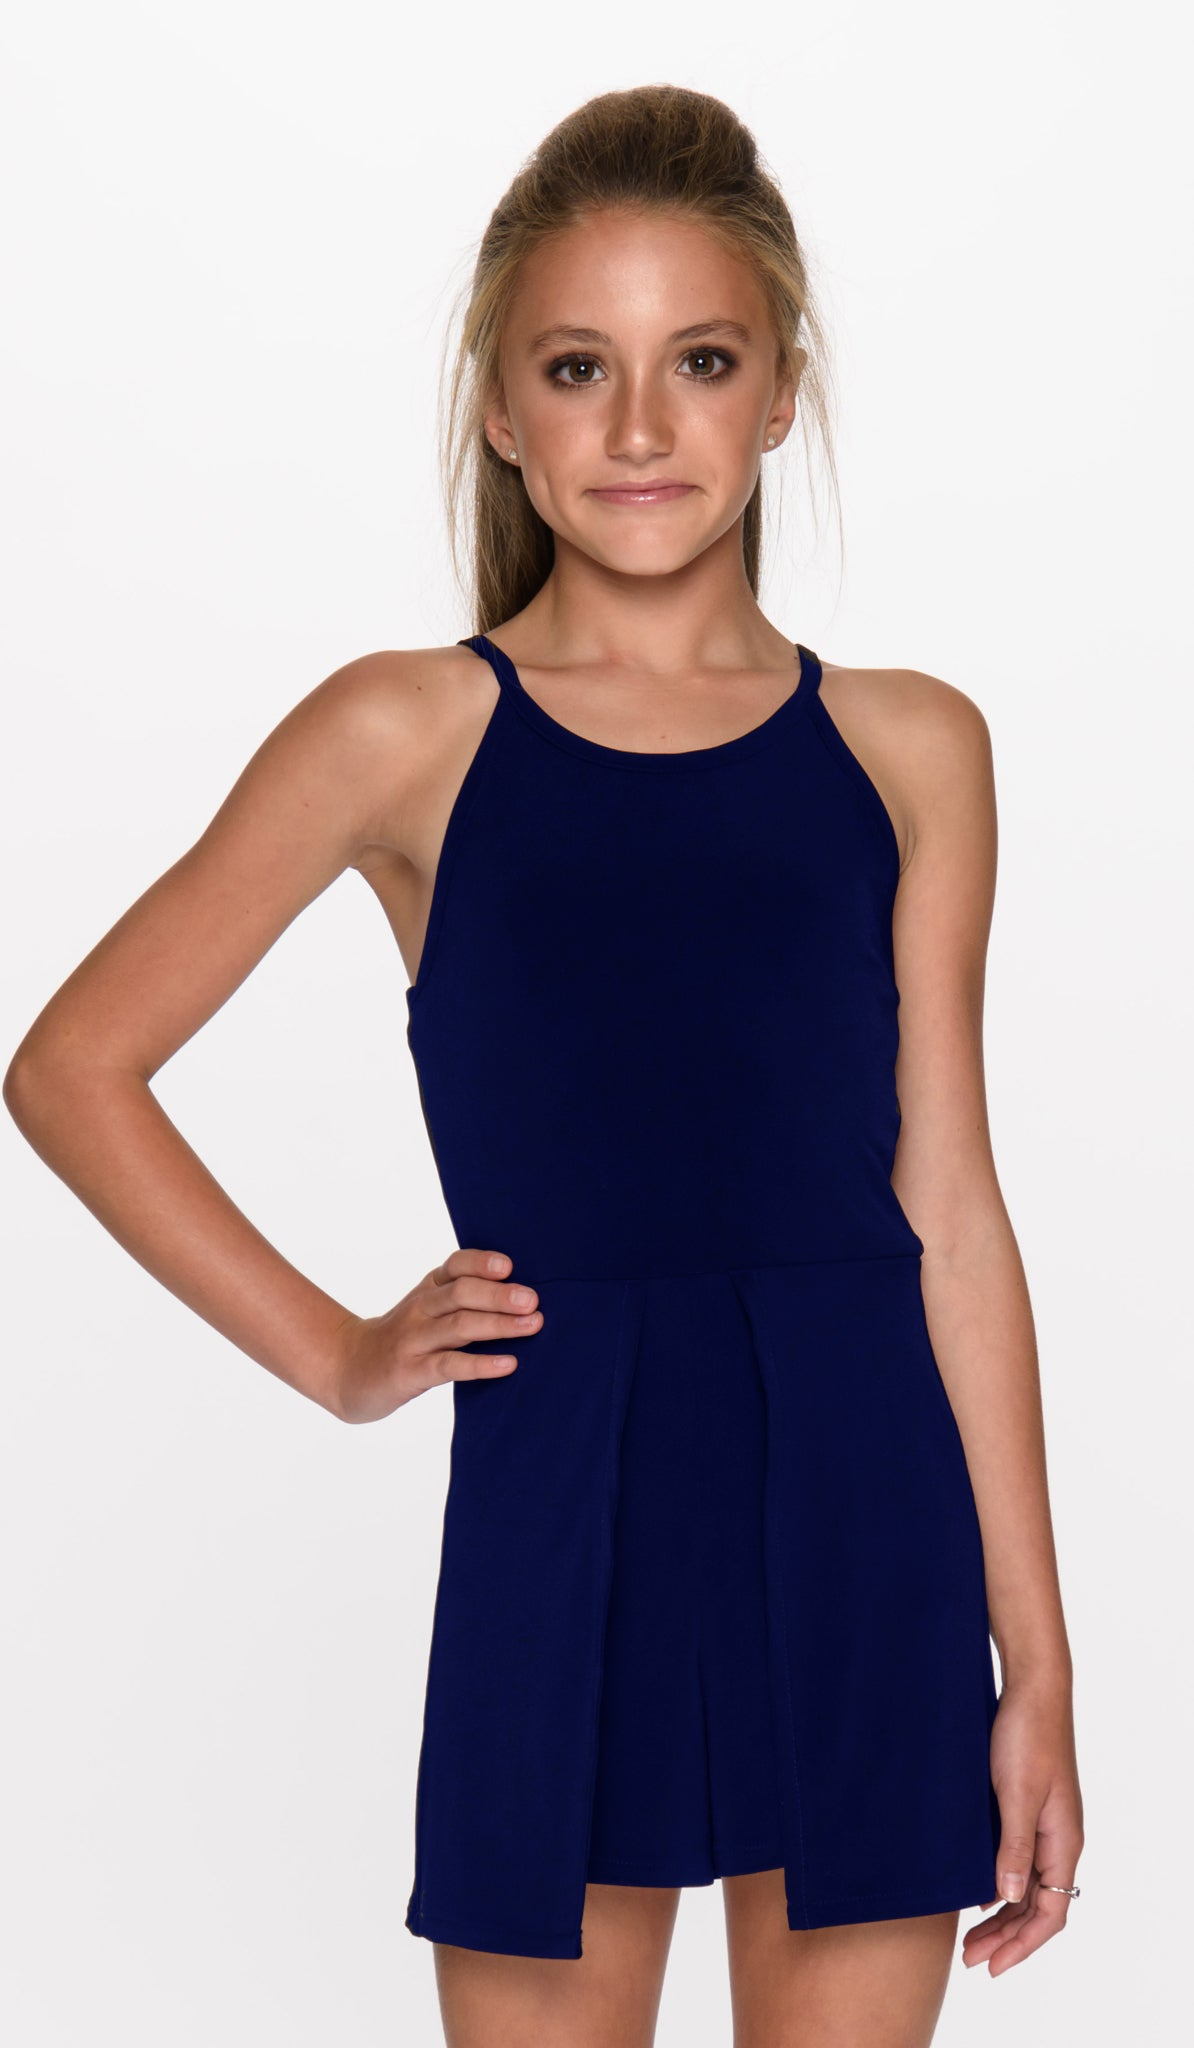 THE TYRA ROMPER - 3033 NAVY - Sallymiller.com - [variant title] - | Event & Party Dresses for Tween Girls & Juniors | Weddings Dresses, Bat Mitzvah Dresses, Sweet Sixteen Dresses, Graduation Dresses, Birthday Party Dresses, Bar Mitzvah Dresses, Cotillion Dresses